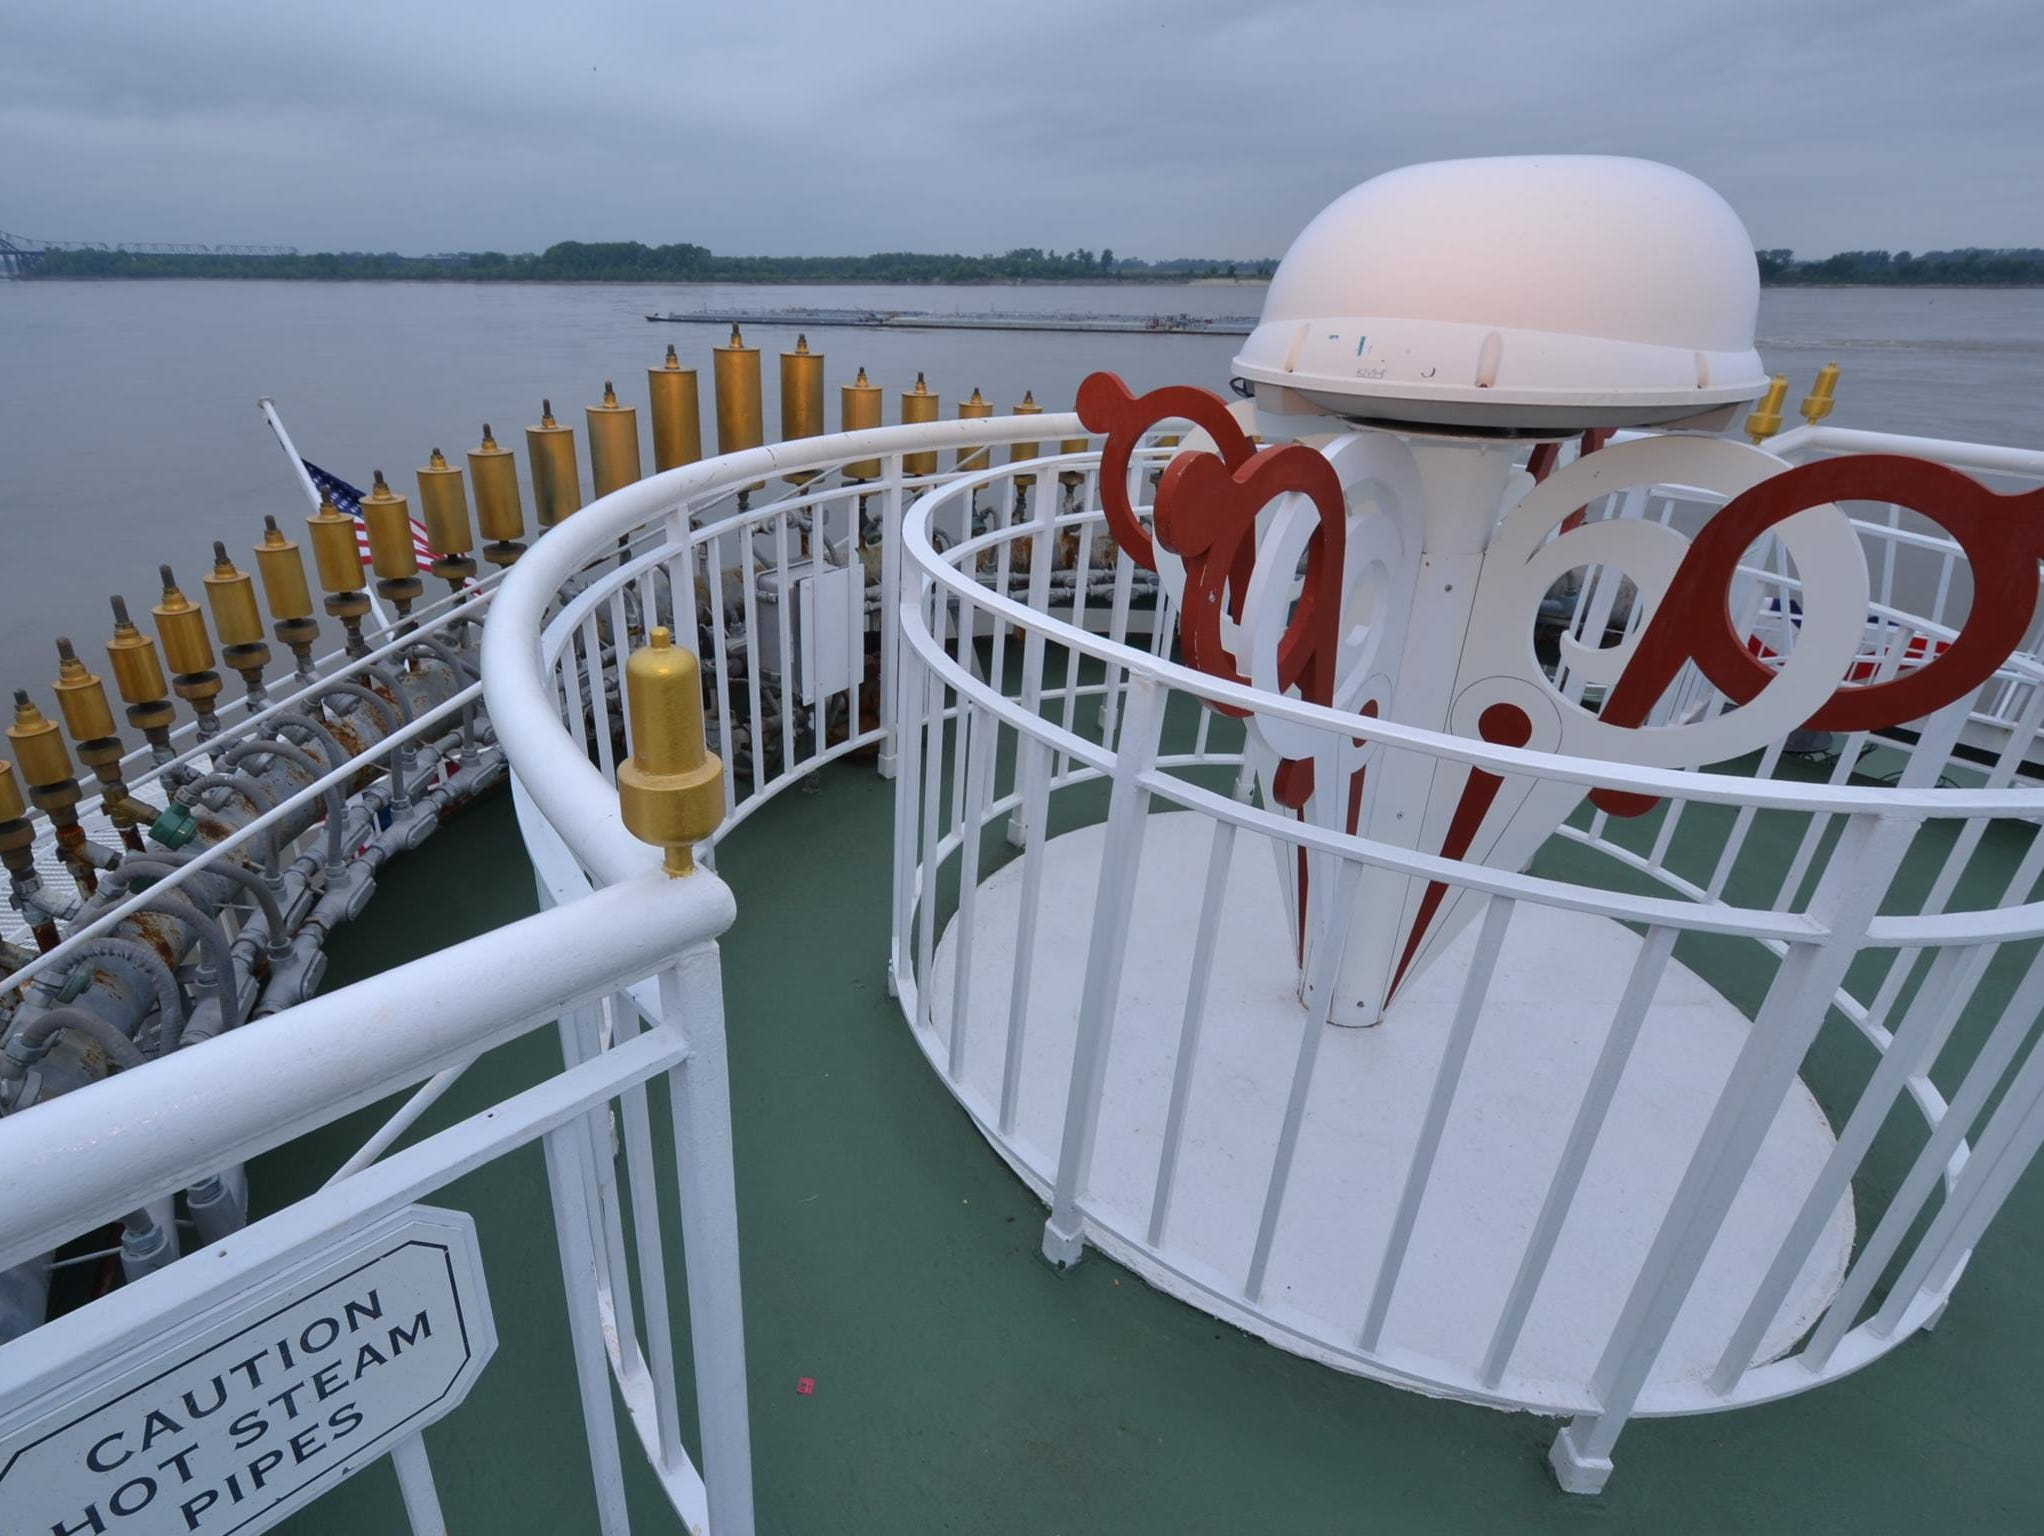 A traditional steam-powered calliope located on the back of the American Queen is often played by crew members on board, offering a historical touch as the vessel is underway.